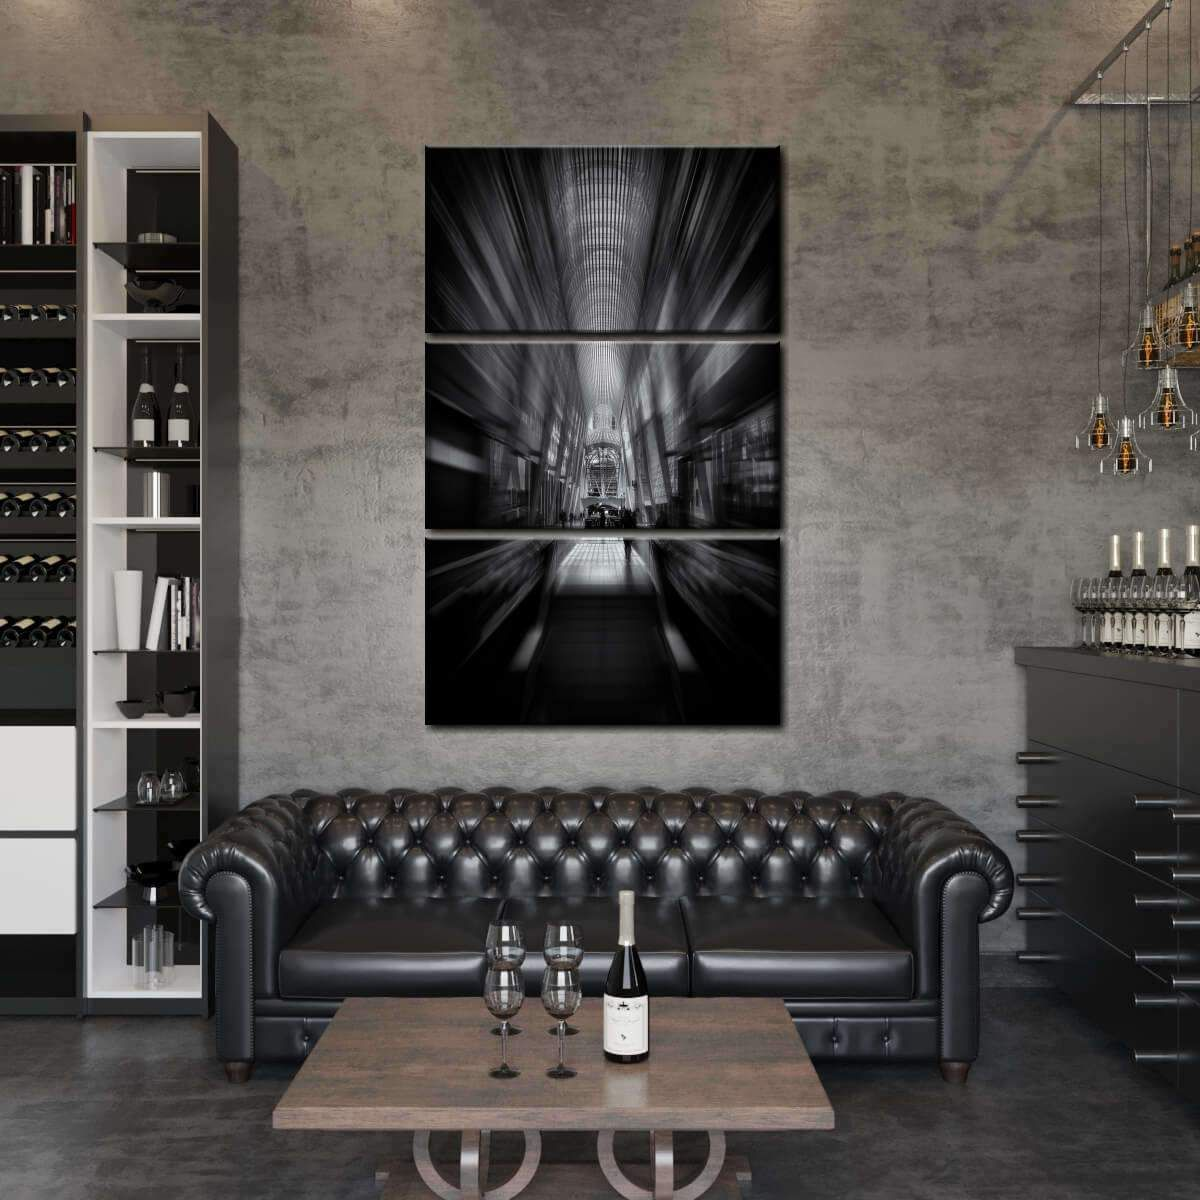 Allen Lambert Galleria Multi Panel Canvas Wall Art adds a contemporary touch to any room. Make your home lively and display stunning wall art of your favorite city.